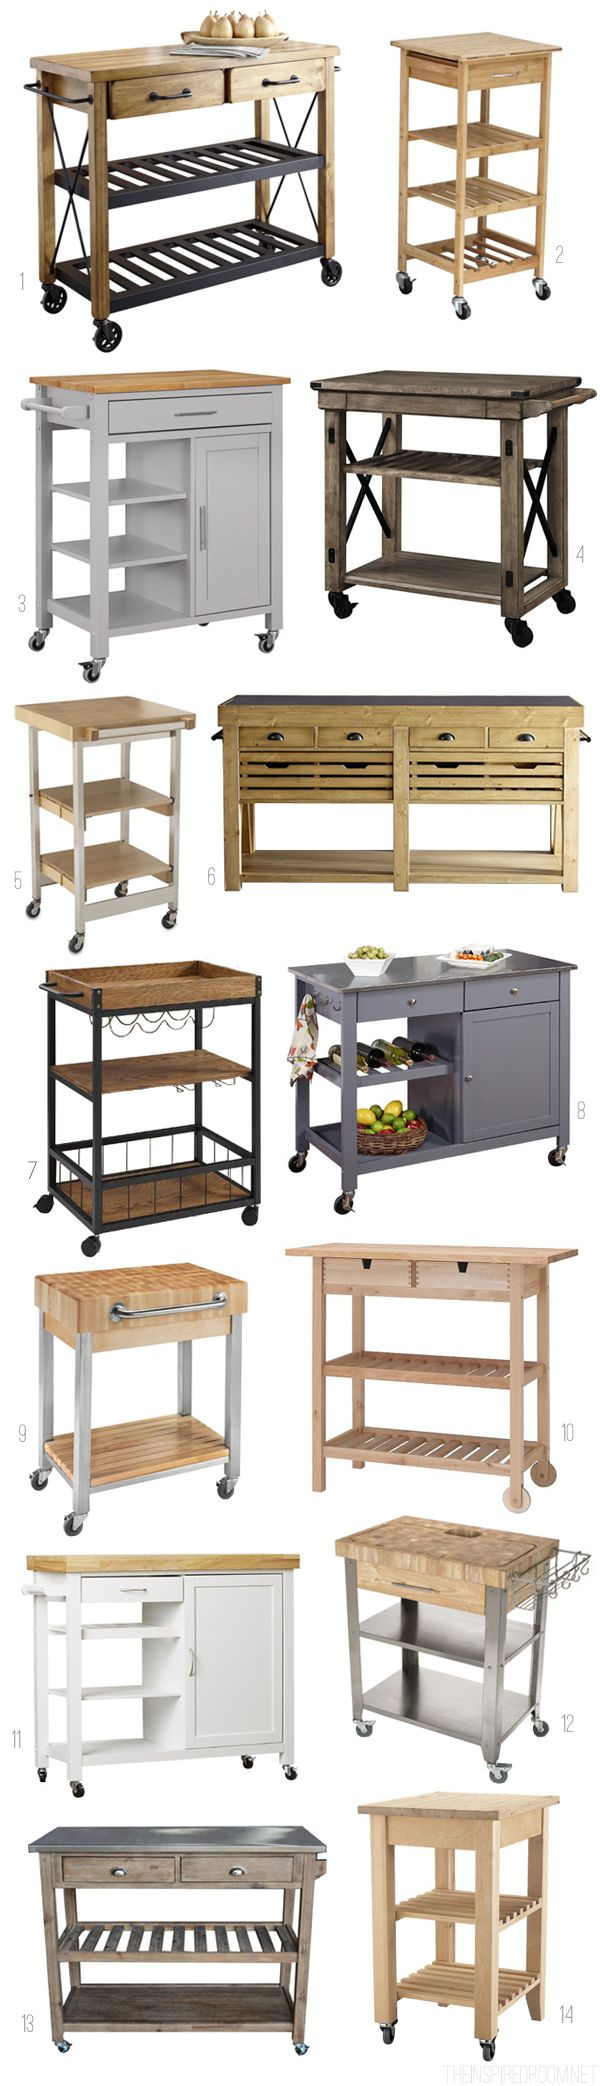 Freestanding Islands And Kitchen Carts   Round Up By The Inspired Room